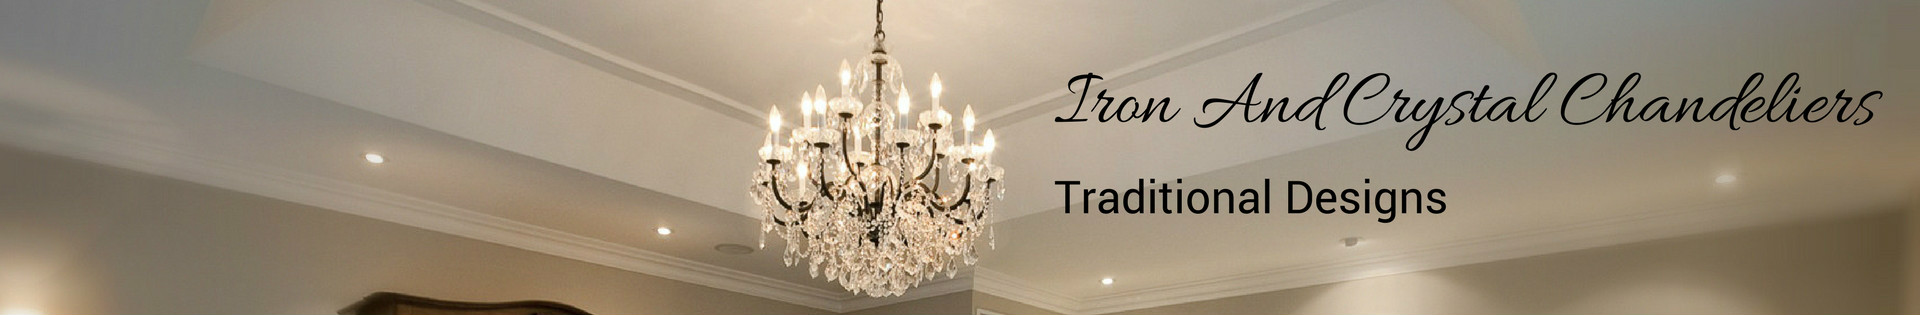 Product Category Banner 1920 x 315 Iron And Crystal Chandeliers